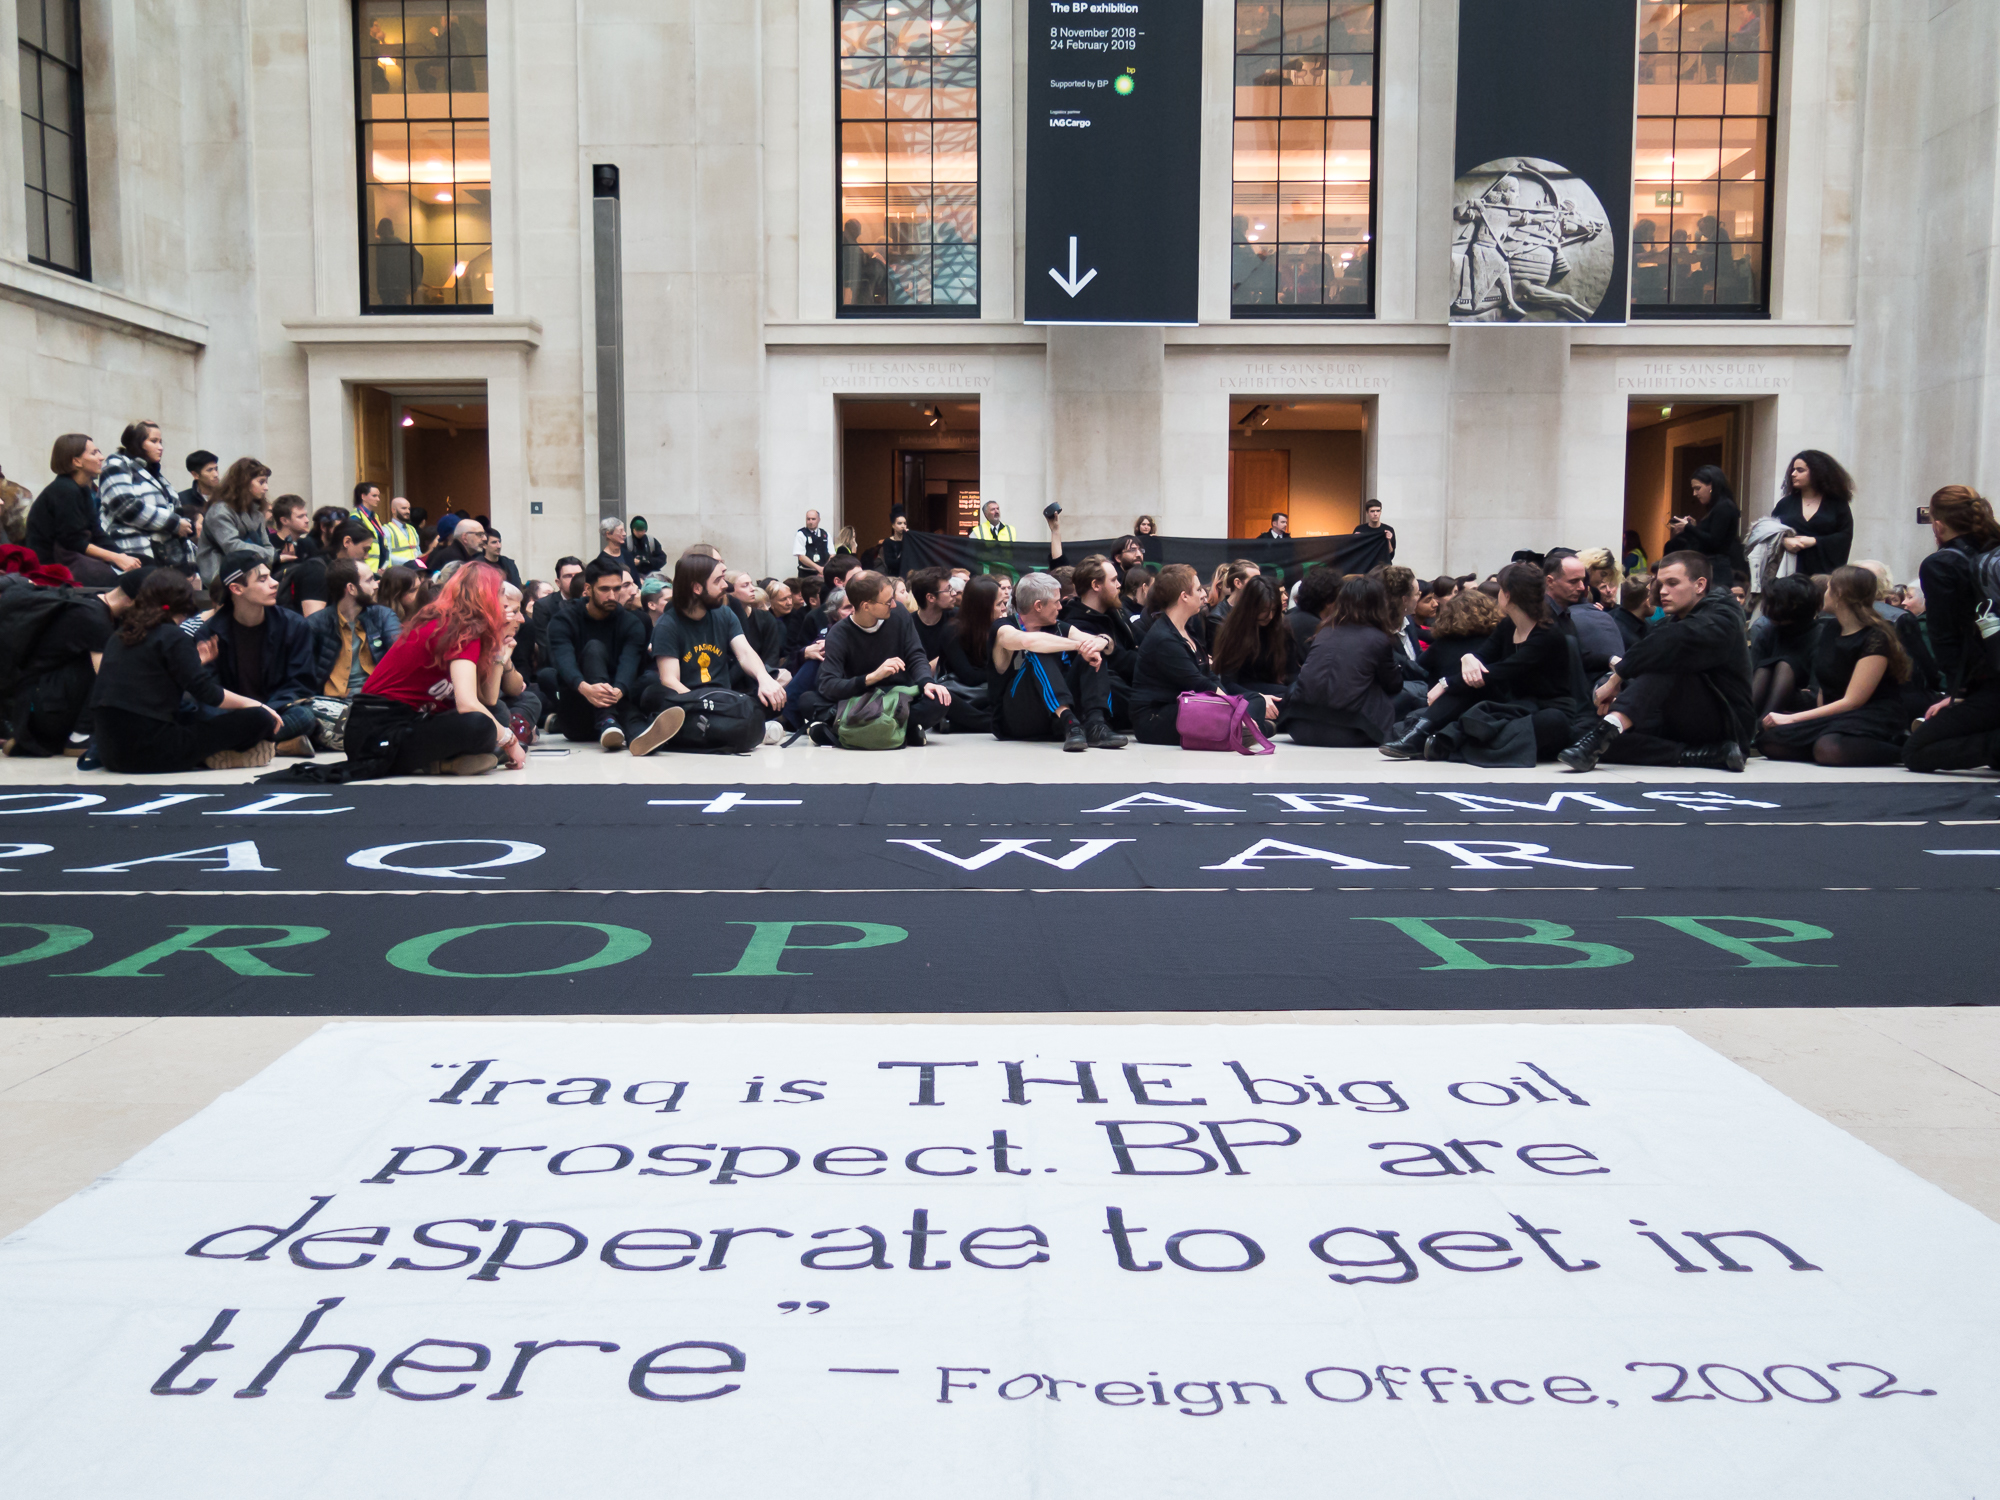 """A photo of a quote from the foreign office """"Iraq is THE big oil prospect. BP is desparate to get in there."""" People are sat on the floor behind the white banner with this quote on."""